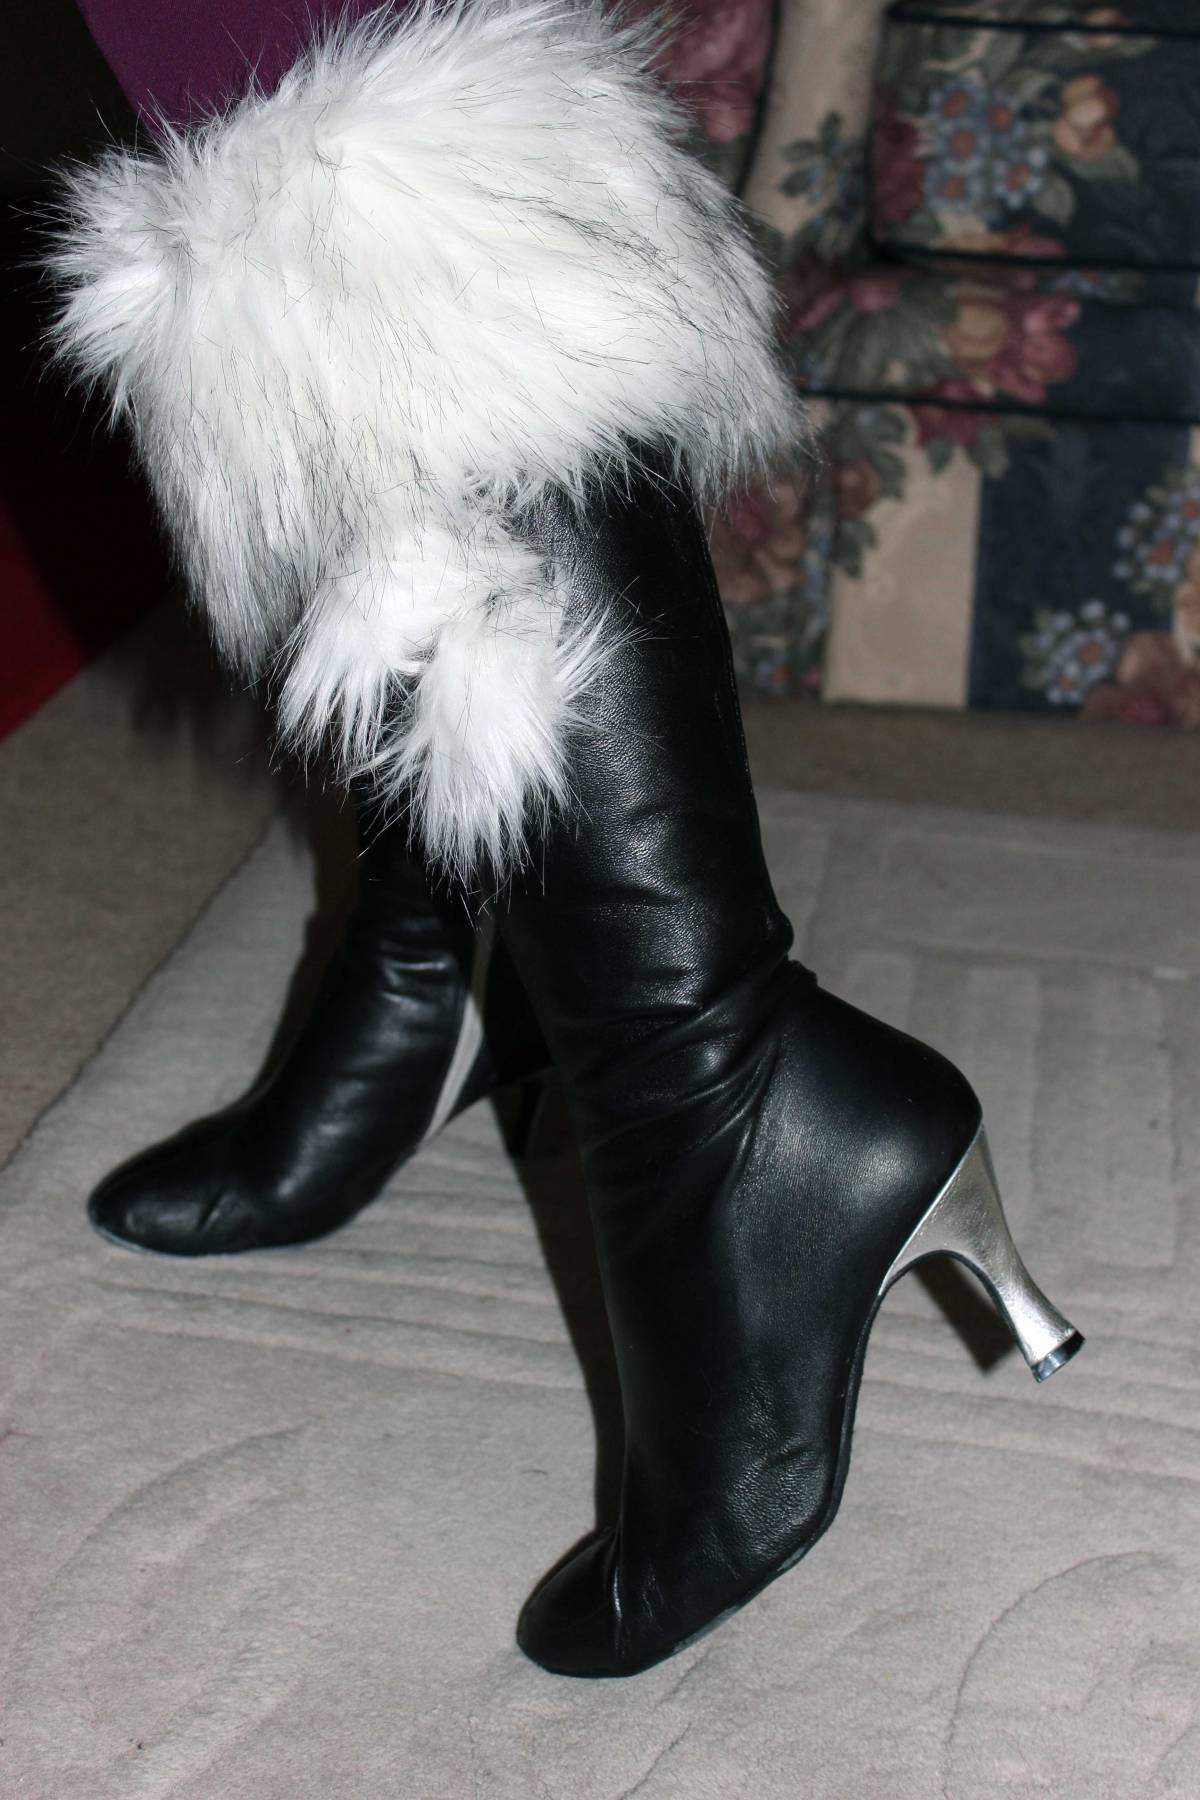 dance boots with boot-toppers